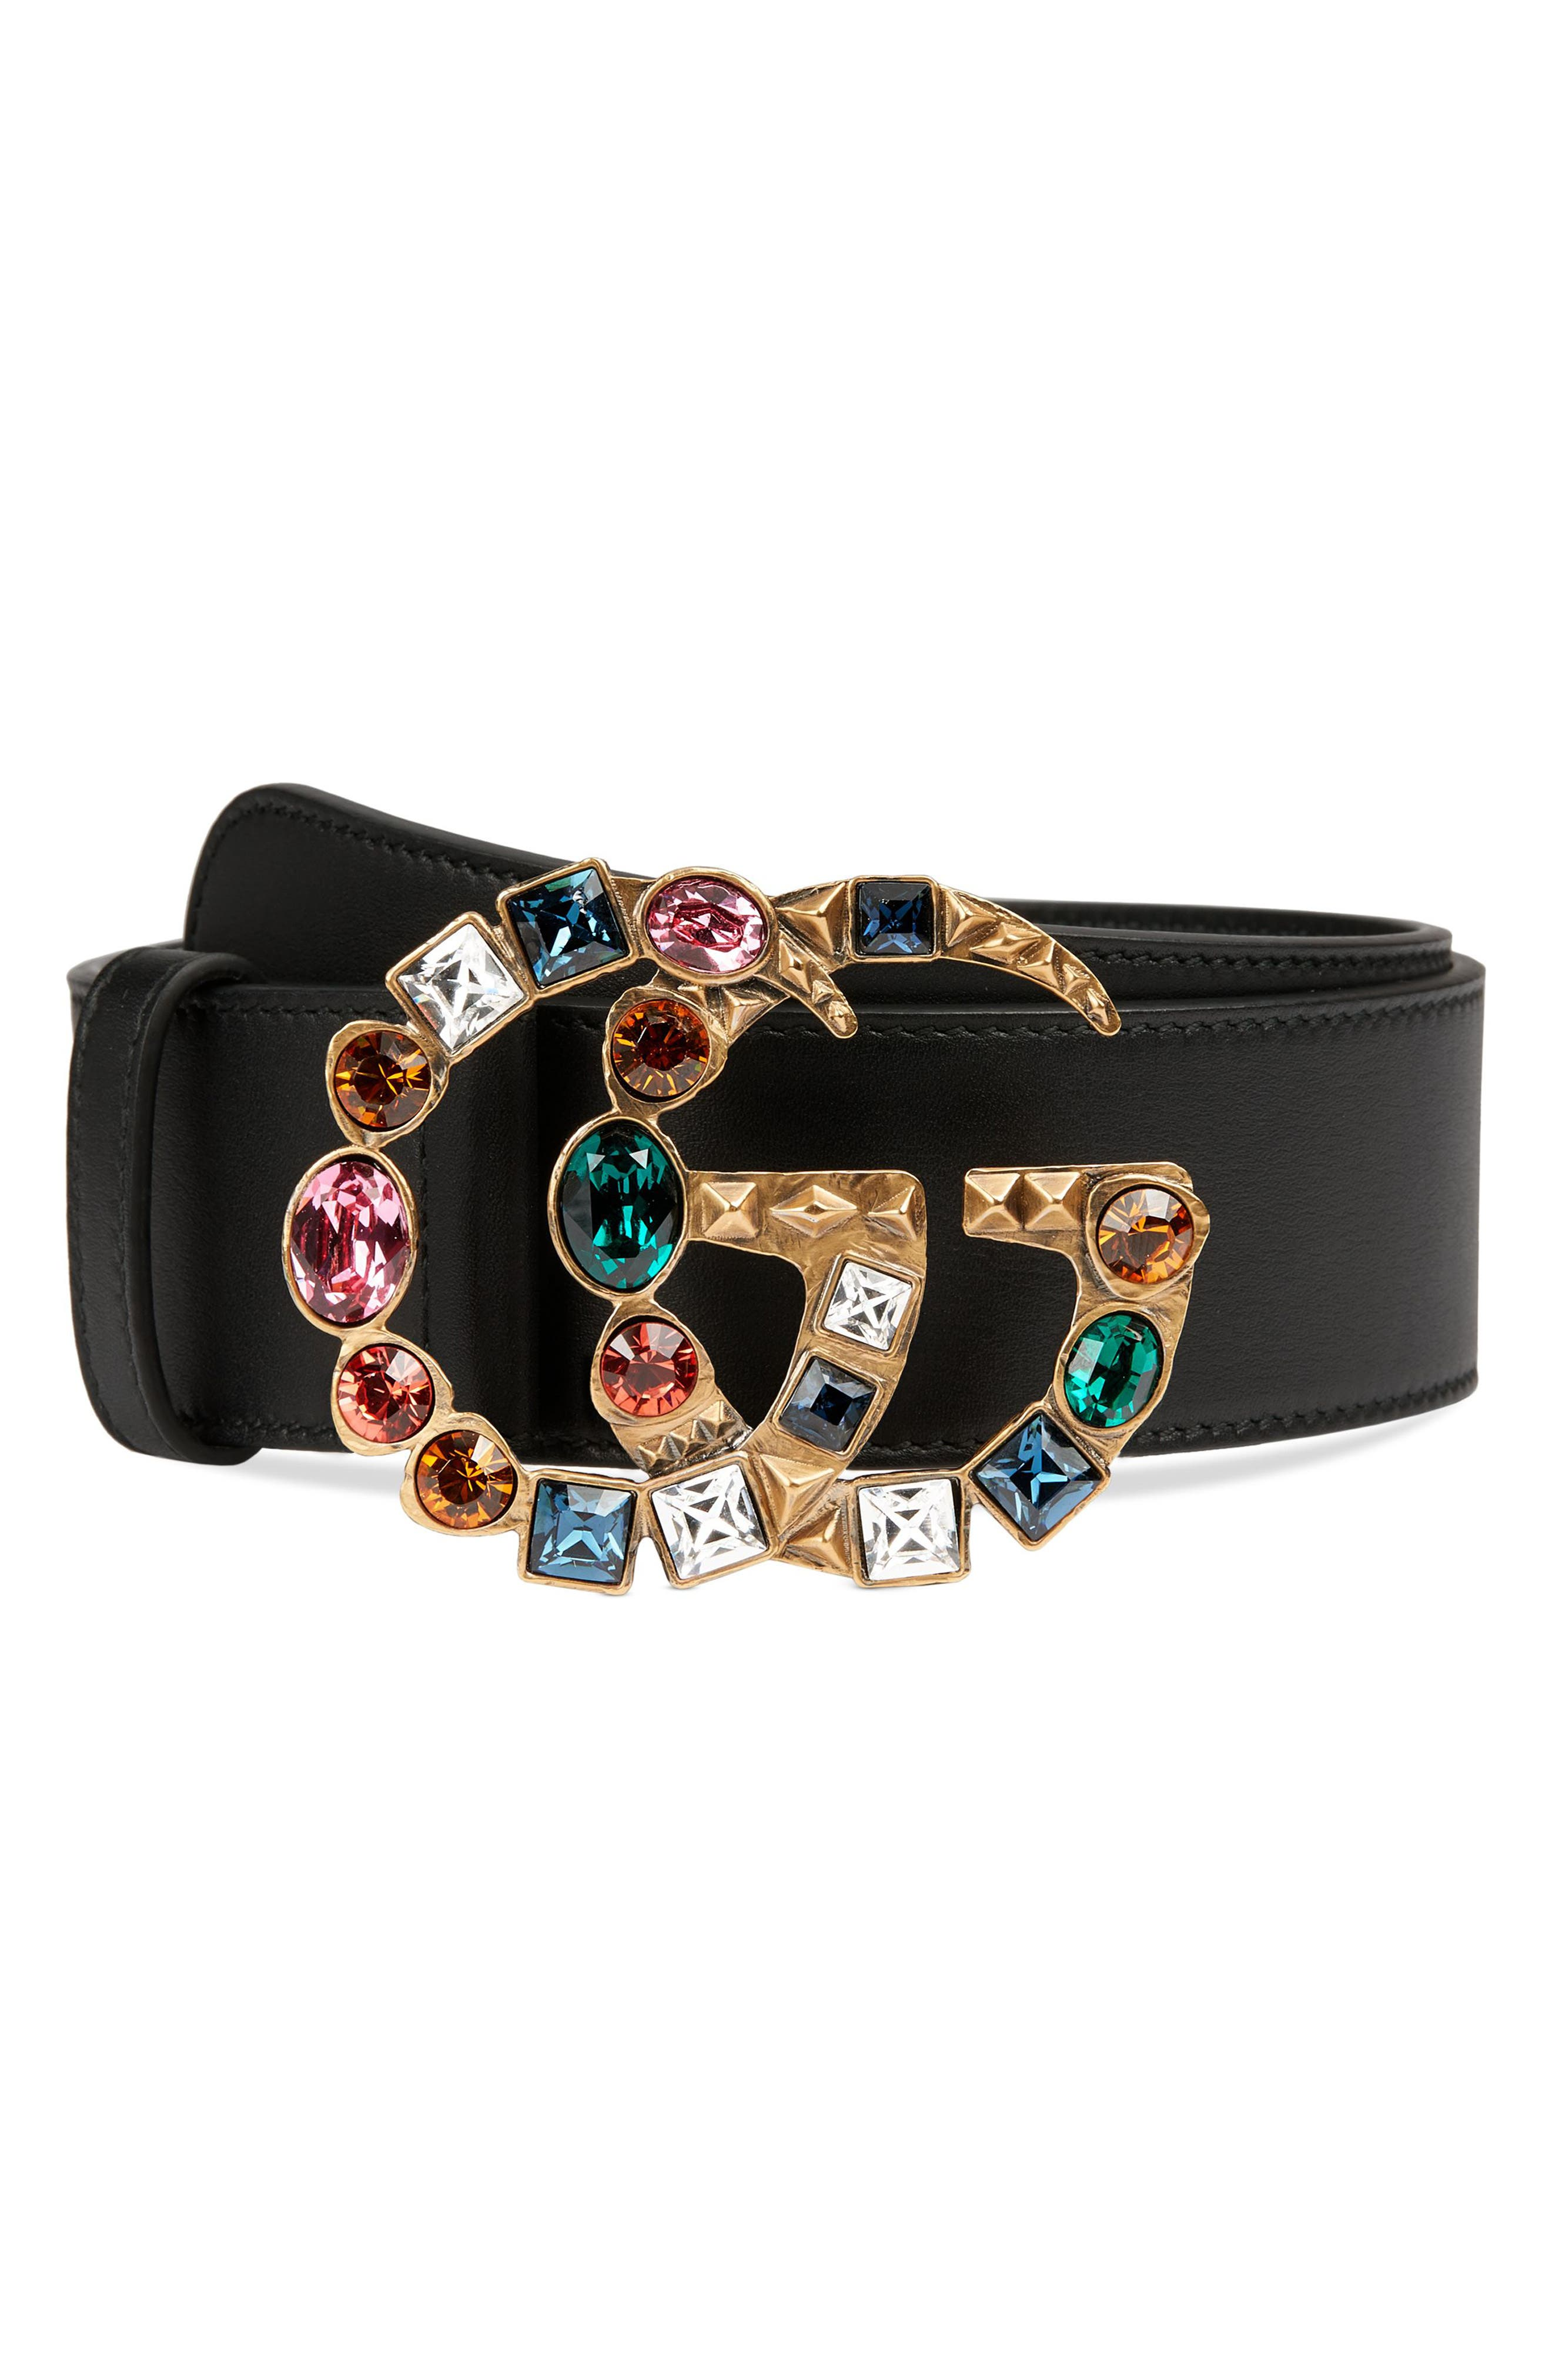 GG Marmont Crystal Buckle Leather Belt,                         Main,                         color, Nero/ Multi